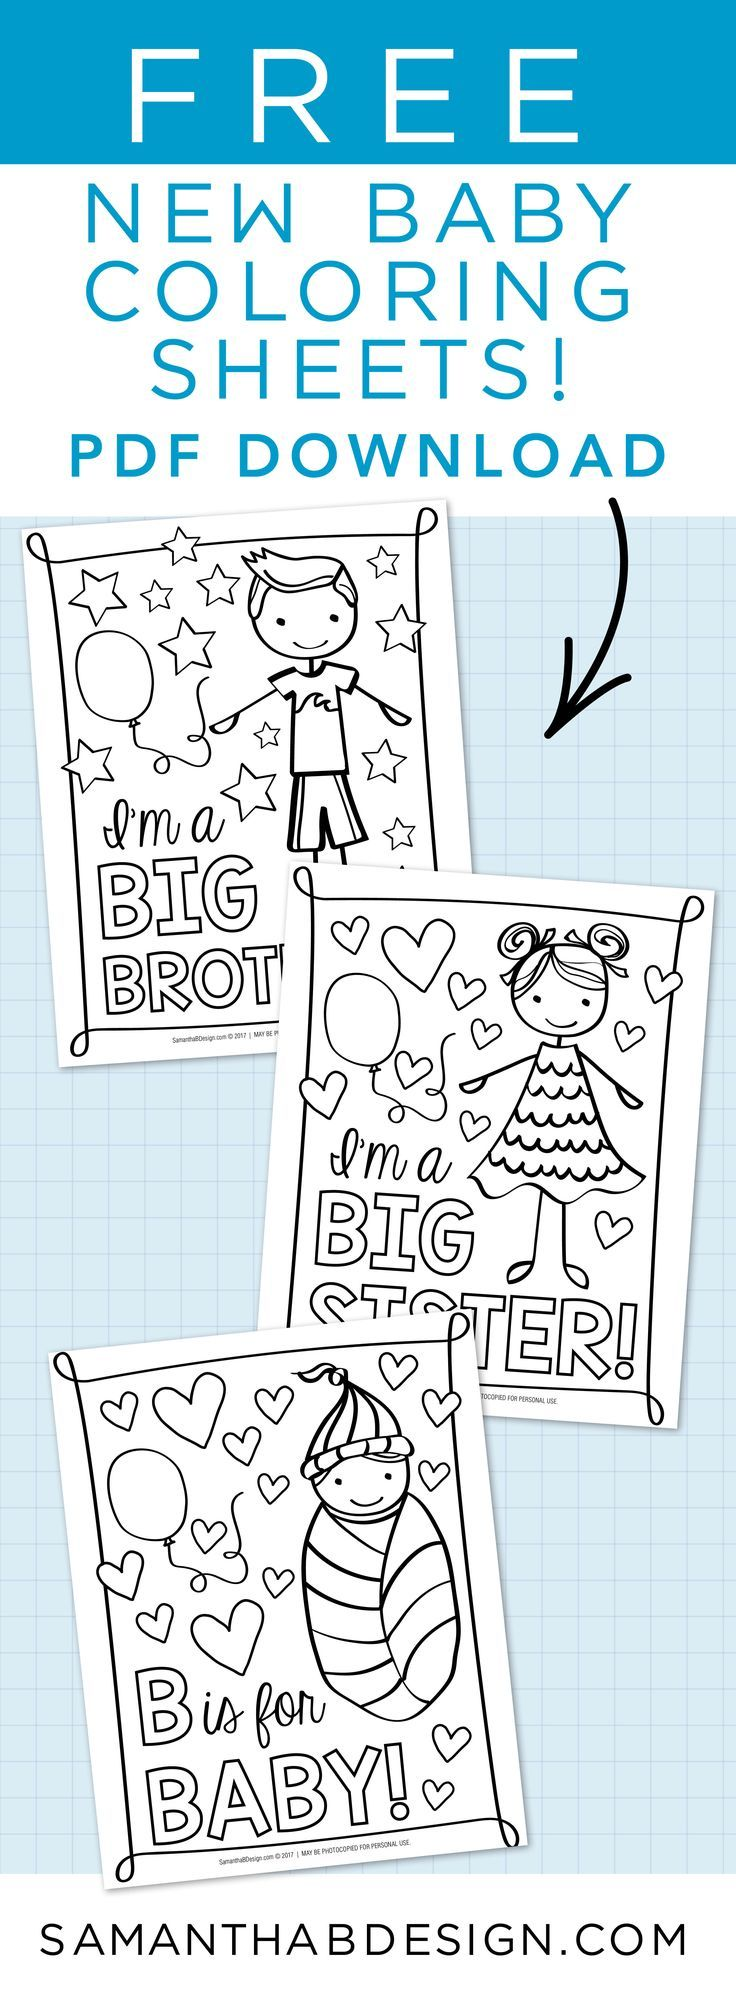 Coloring Sheets For Big Sister Big Brother Great For Baby Shower Or Hospital Gift For New Siblings Download New Baby Products Big Sister Gifts Hospital Gifts